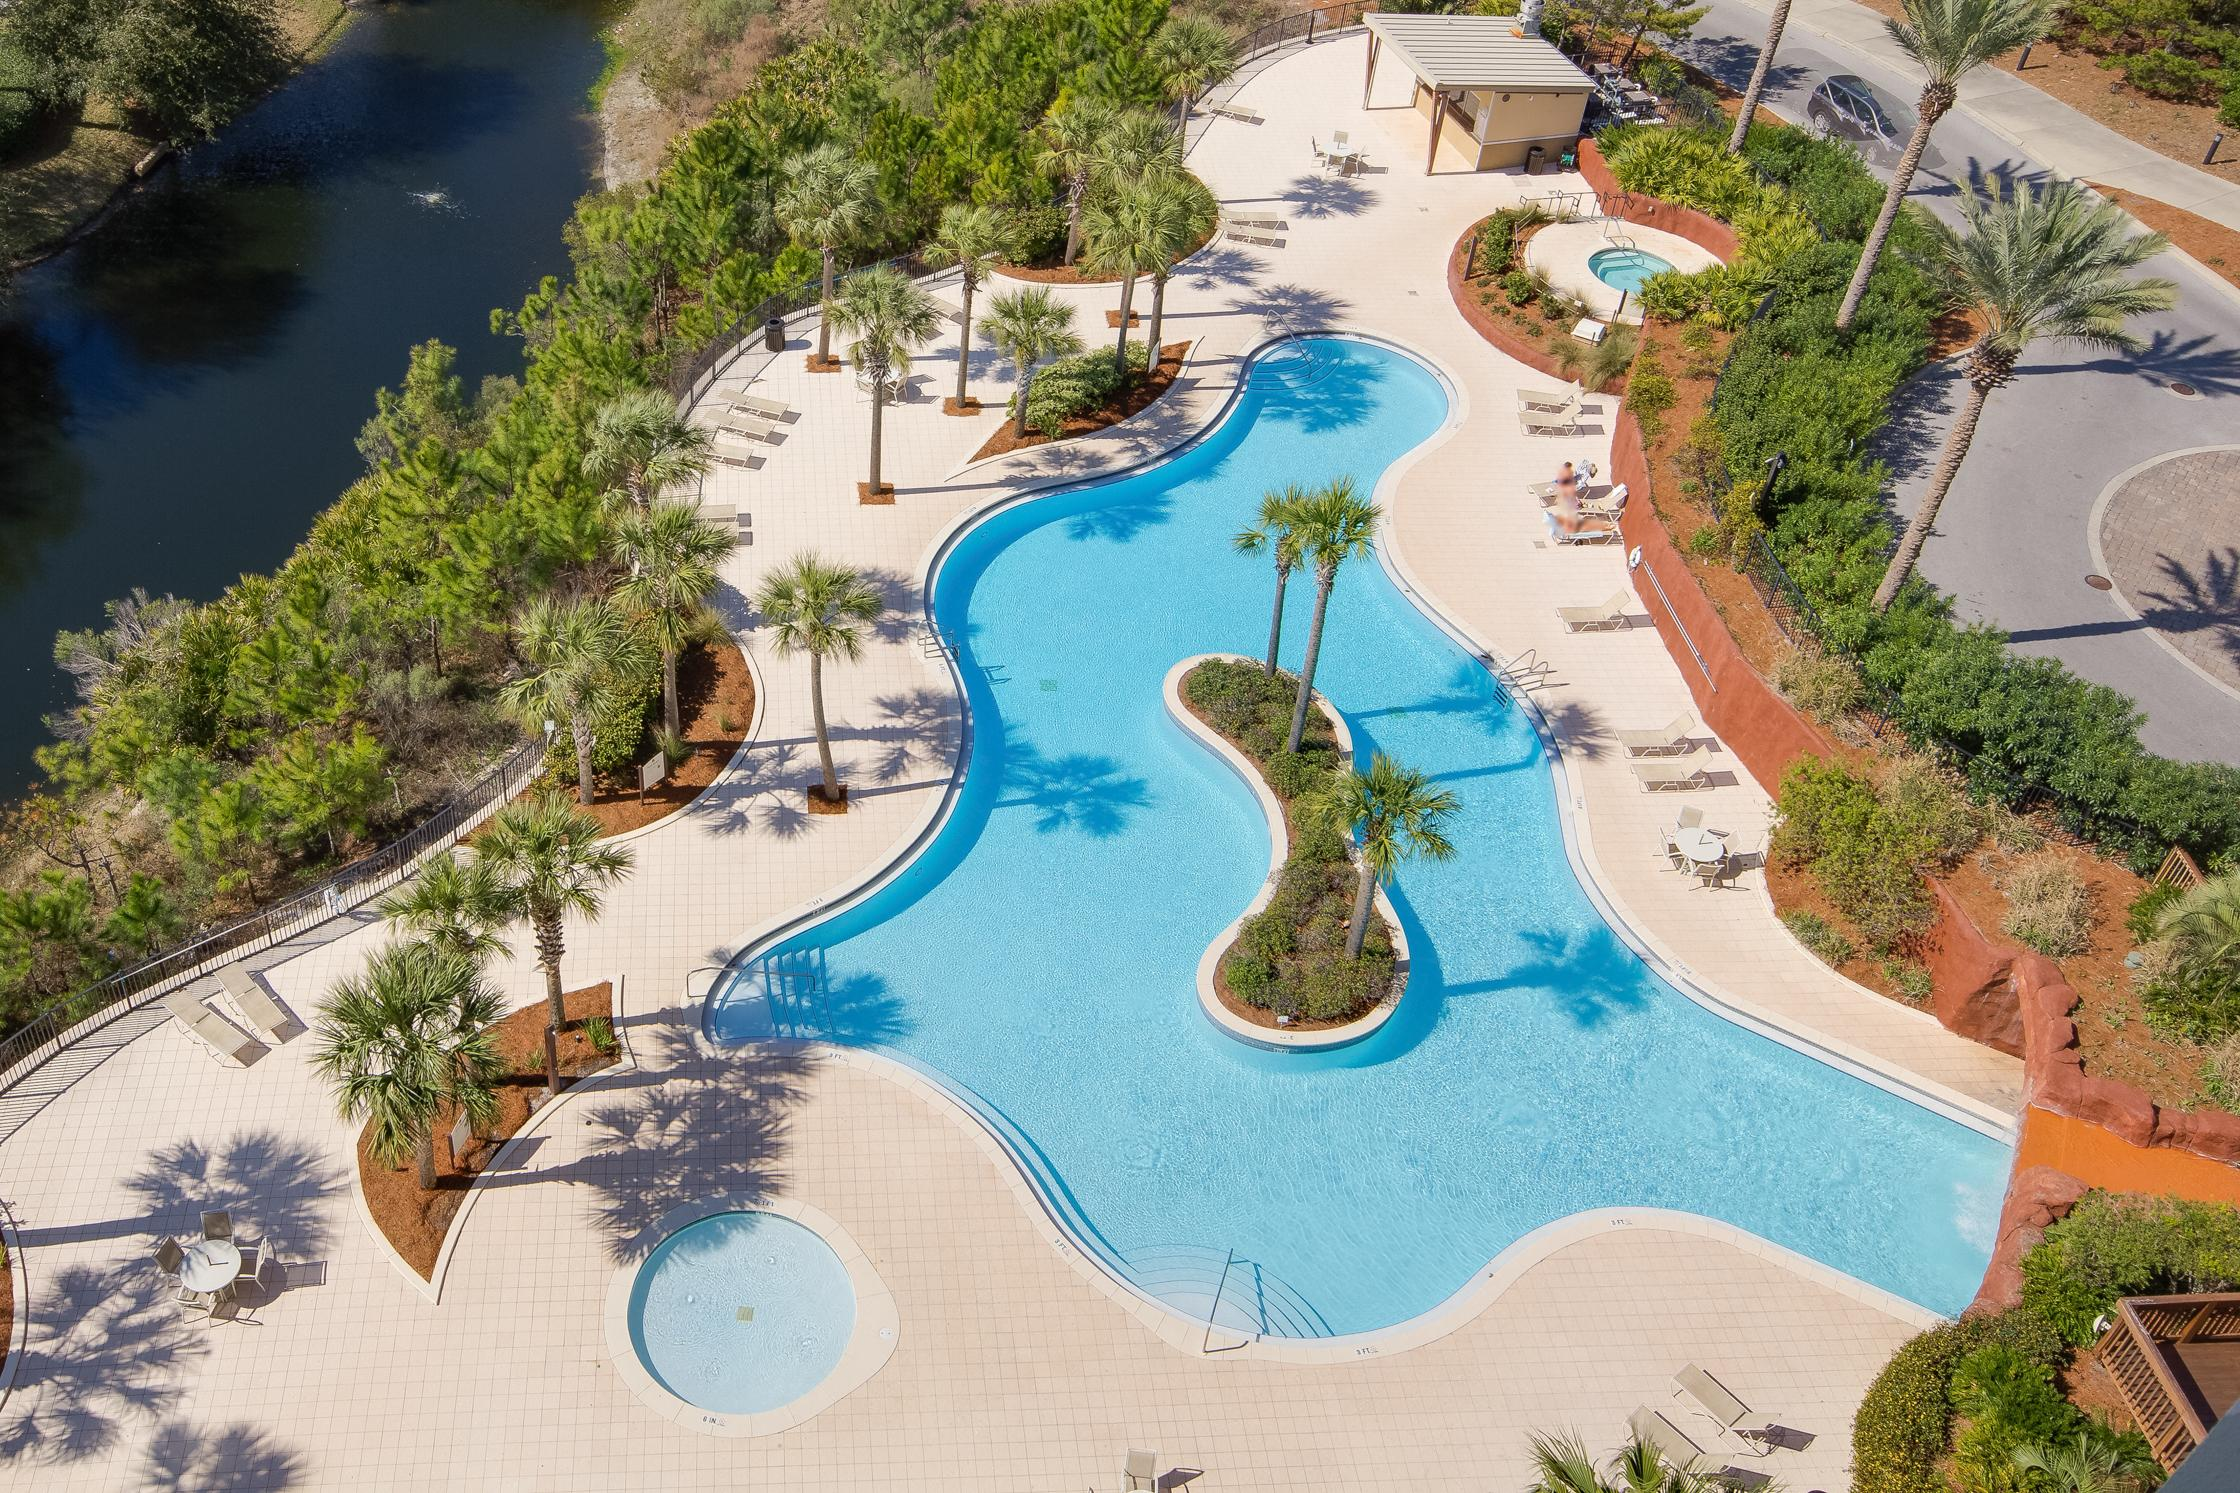 Property Image 2 - Luxury Resort Condo w/ Pool - Steps to Sand!